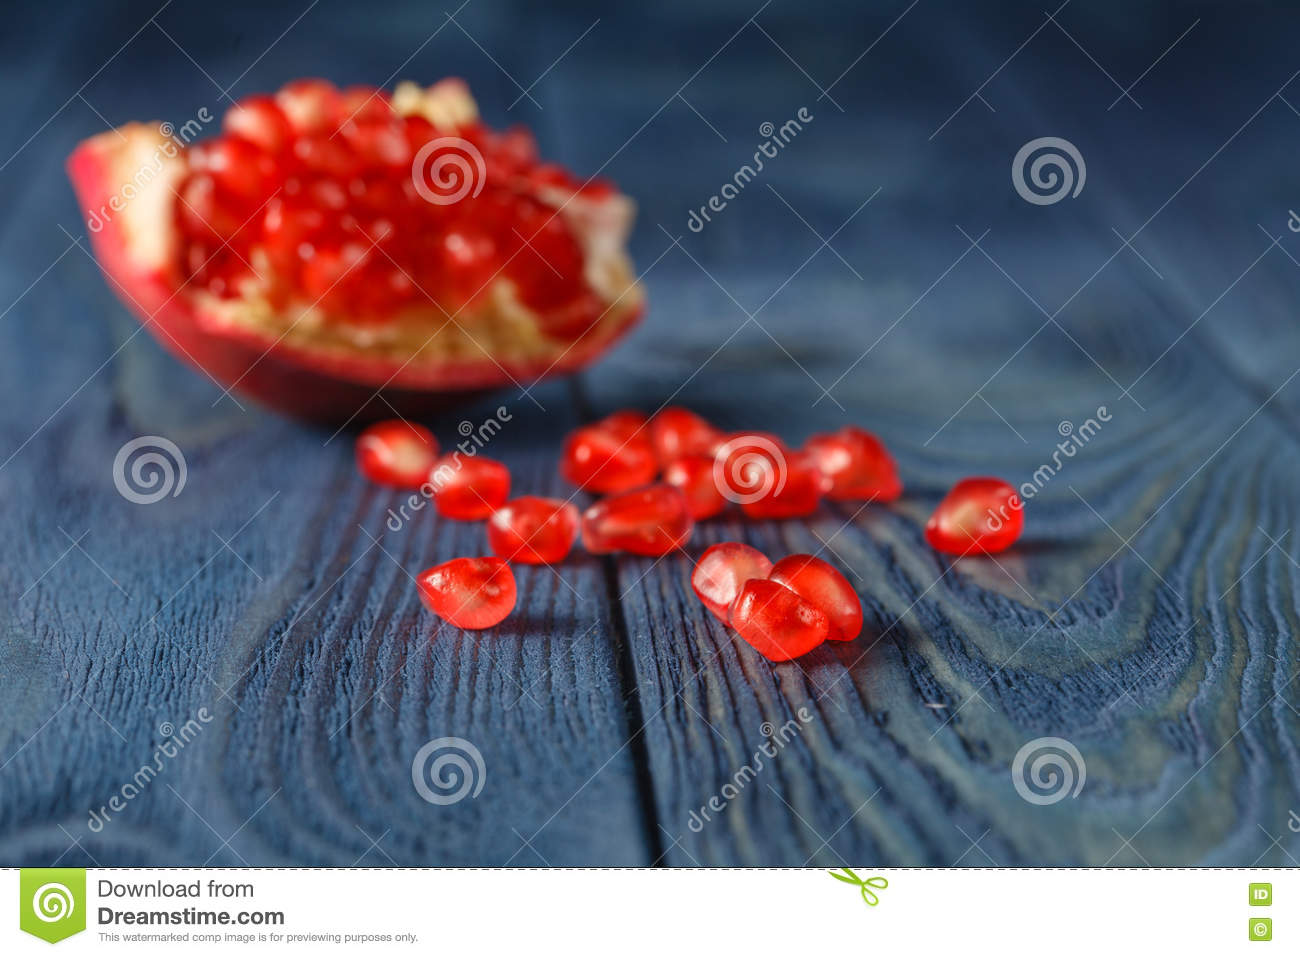 Pomegranate slices and garnet fruit seeds on table. Selective focus